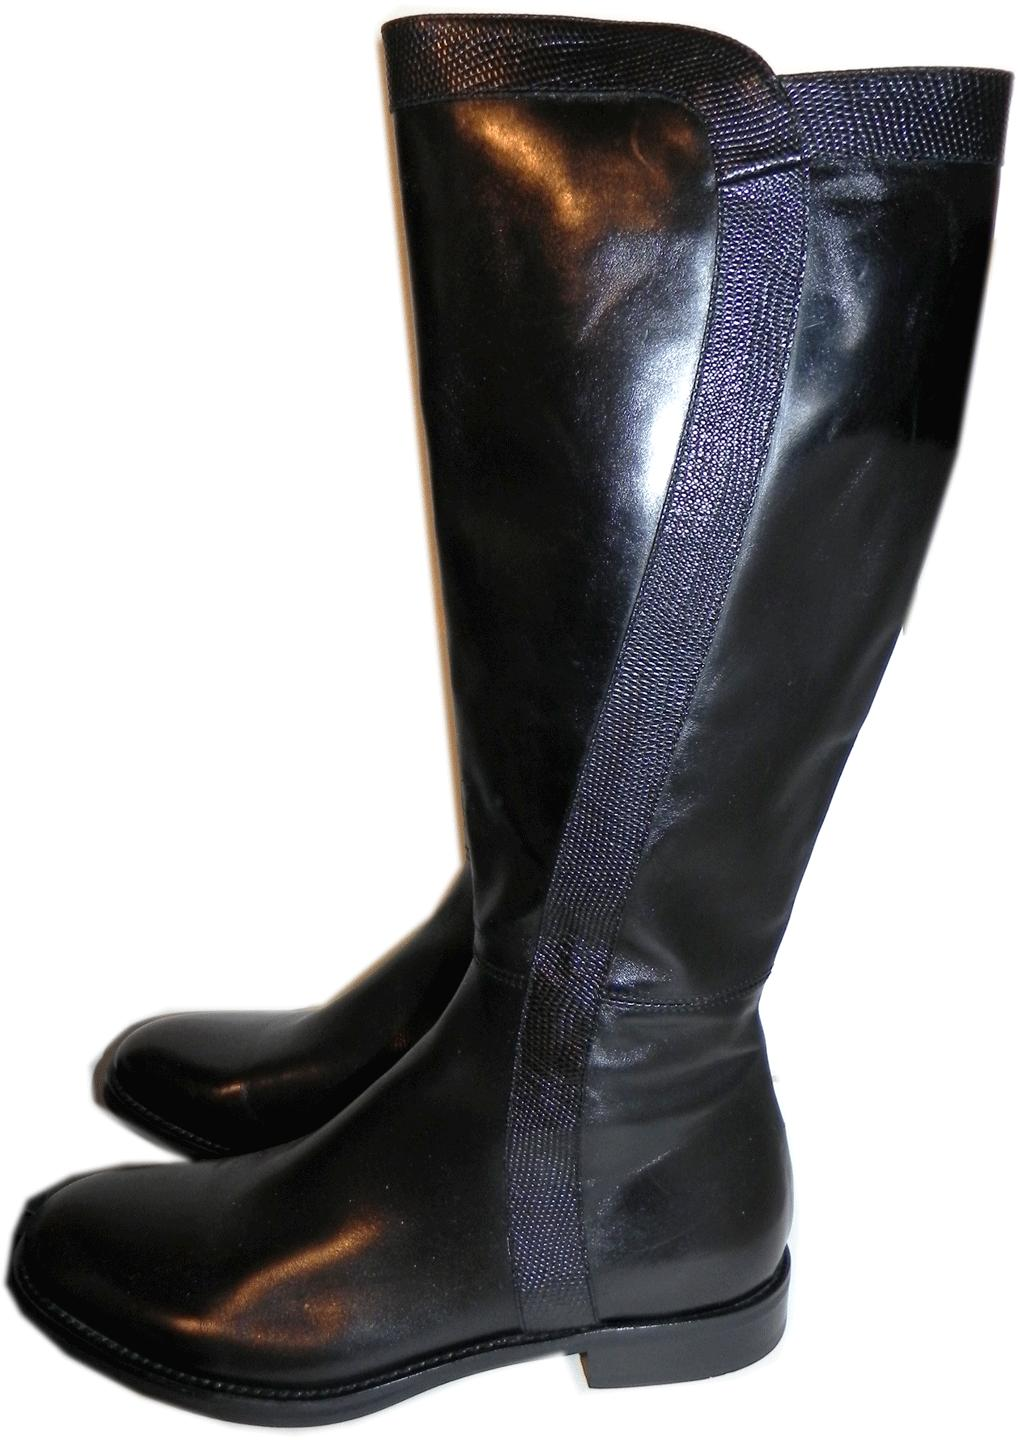 $580 AGL Attilio Giusti Leombruni Tall Knee Black Boots Riding Booties 9 - 39